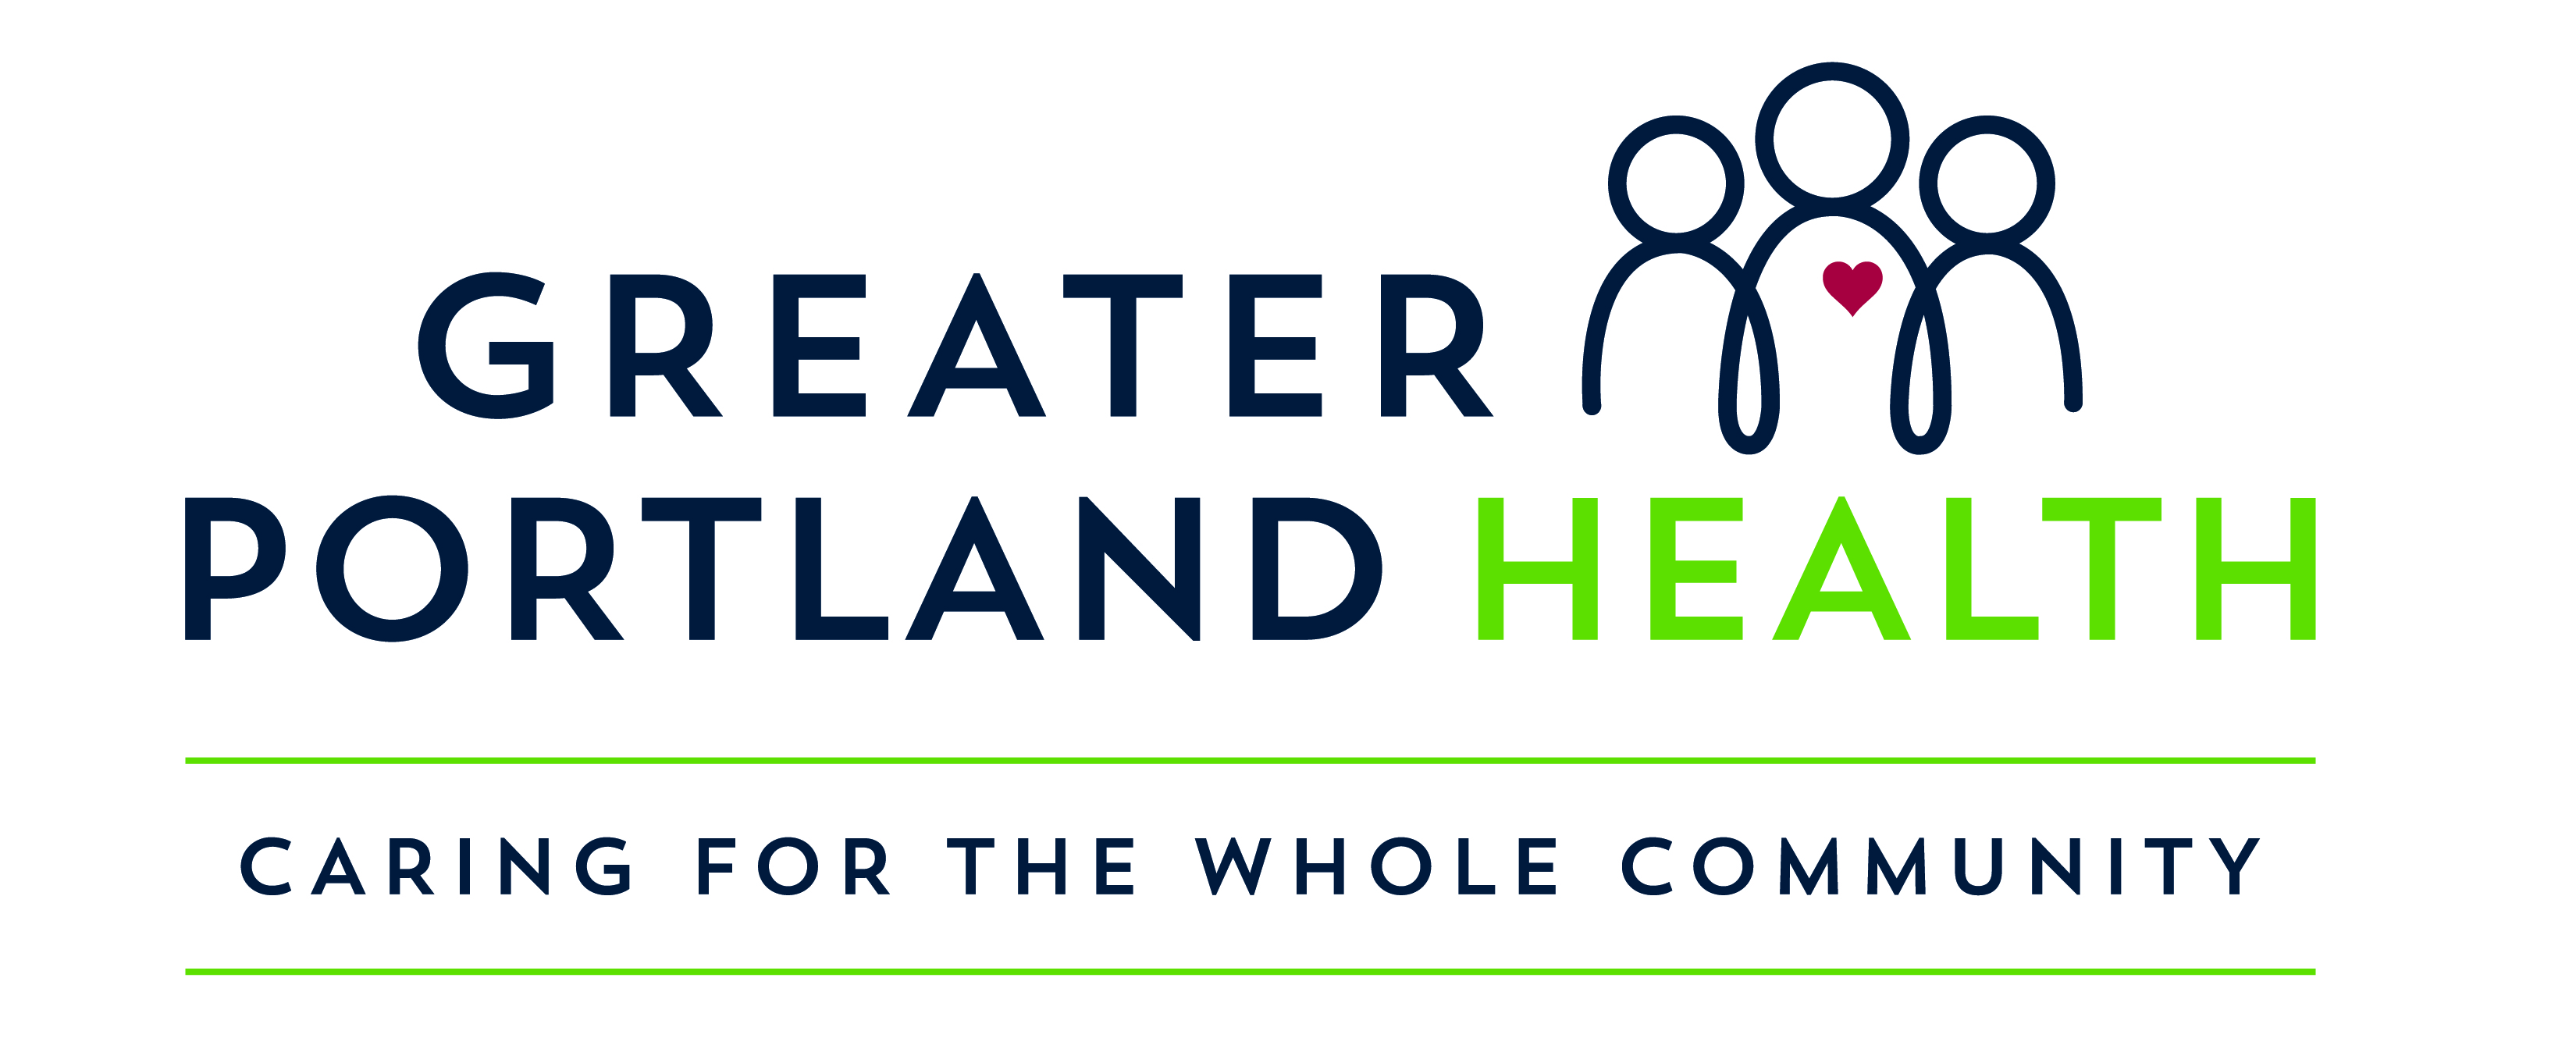 portland community health center